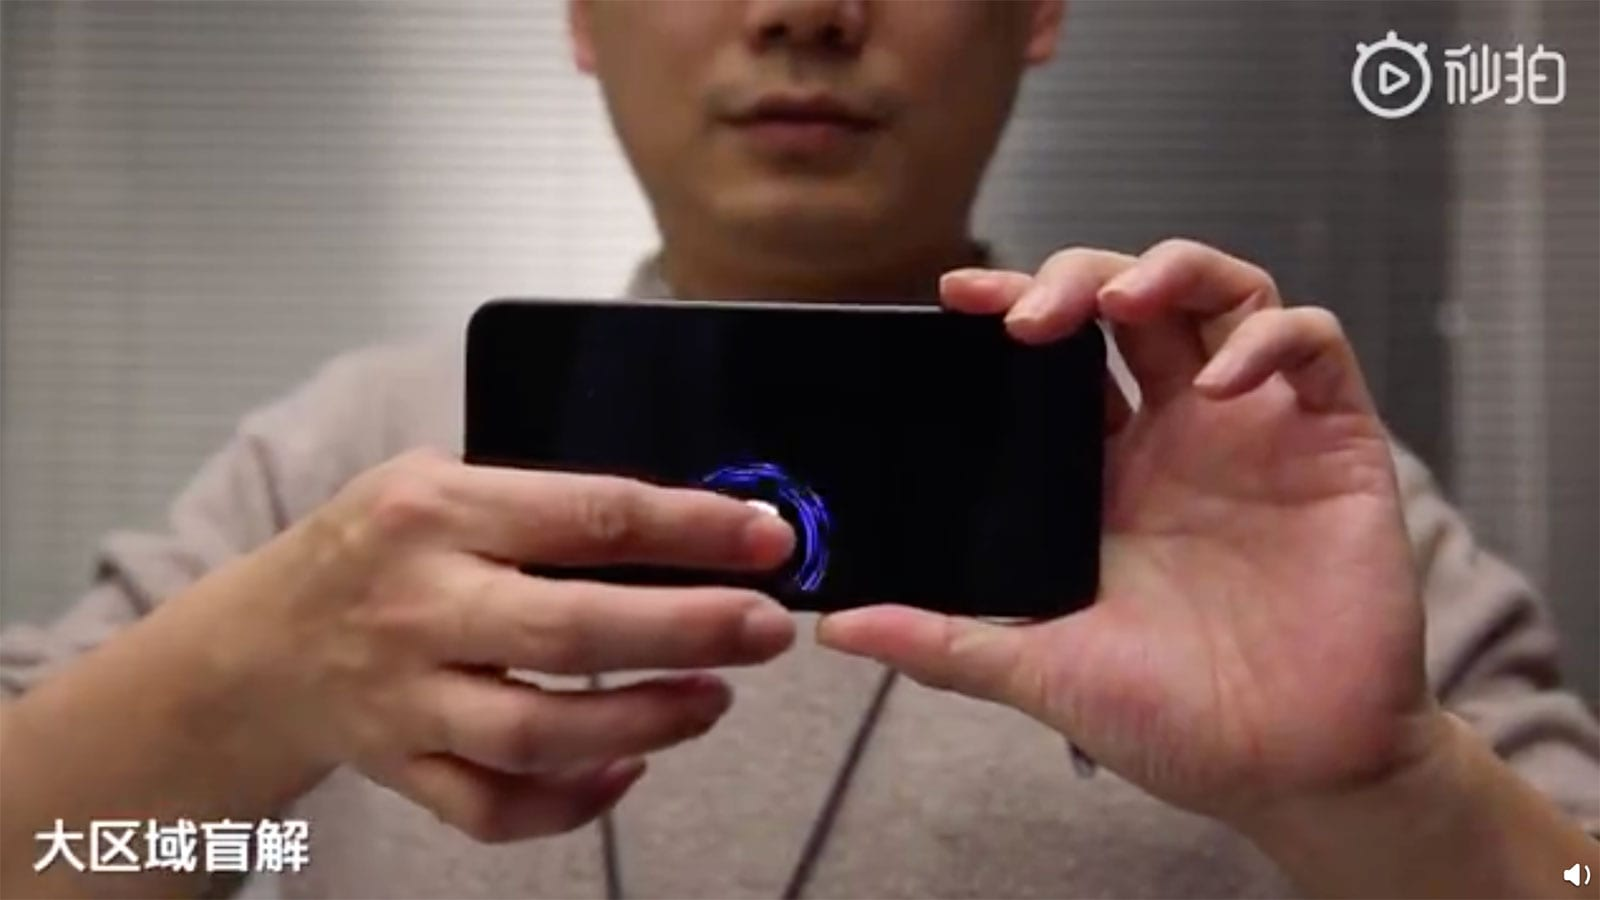 Xiaomi's large-area in-display fingerprint recognition